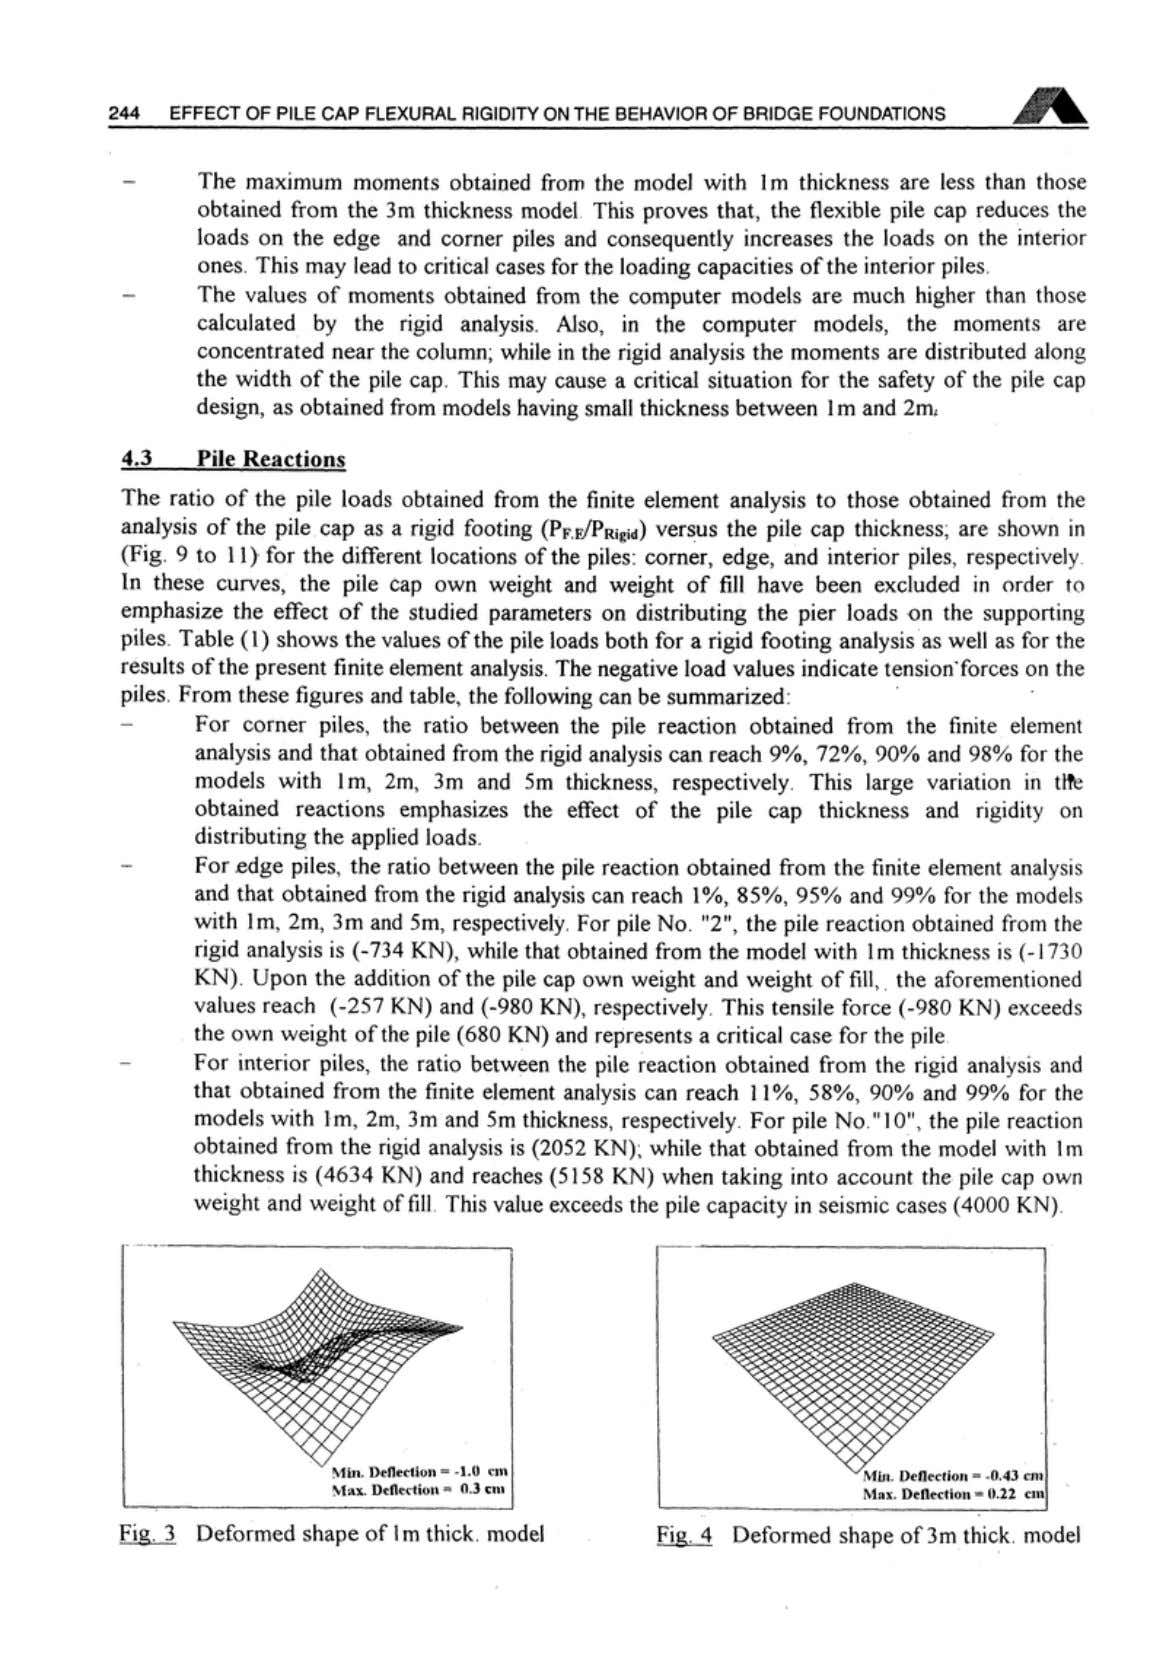 244 EFFECT OF PILE CAP FLEXURAL RIGIDITY ON THE BEHAVIOR OF BRIDGE FOUNDATIONS - The